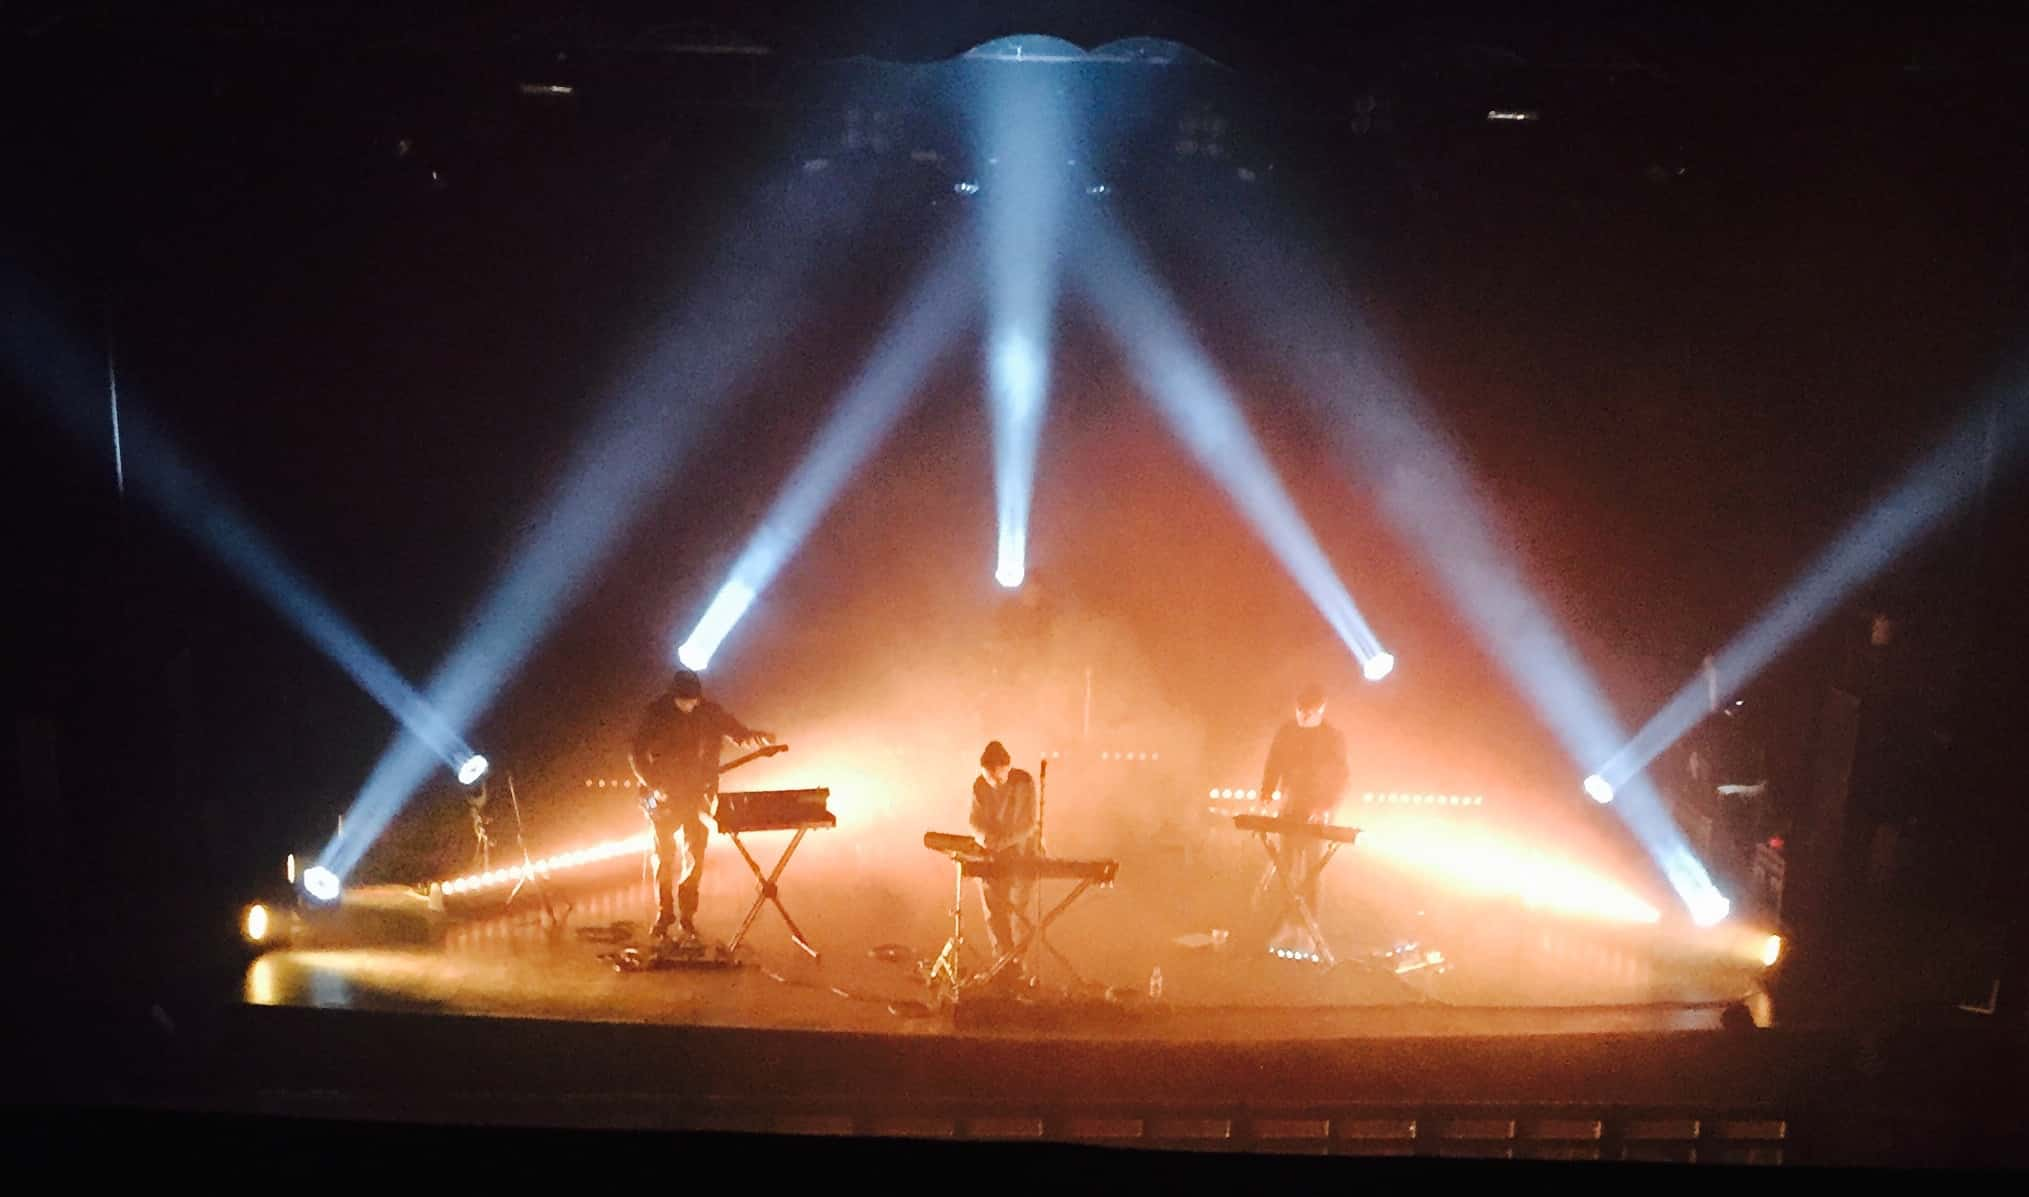 Shura Live Tour - Lighting Support Vortex Events